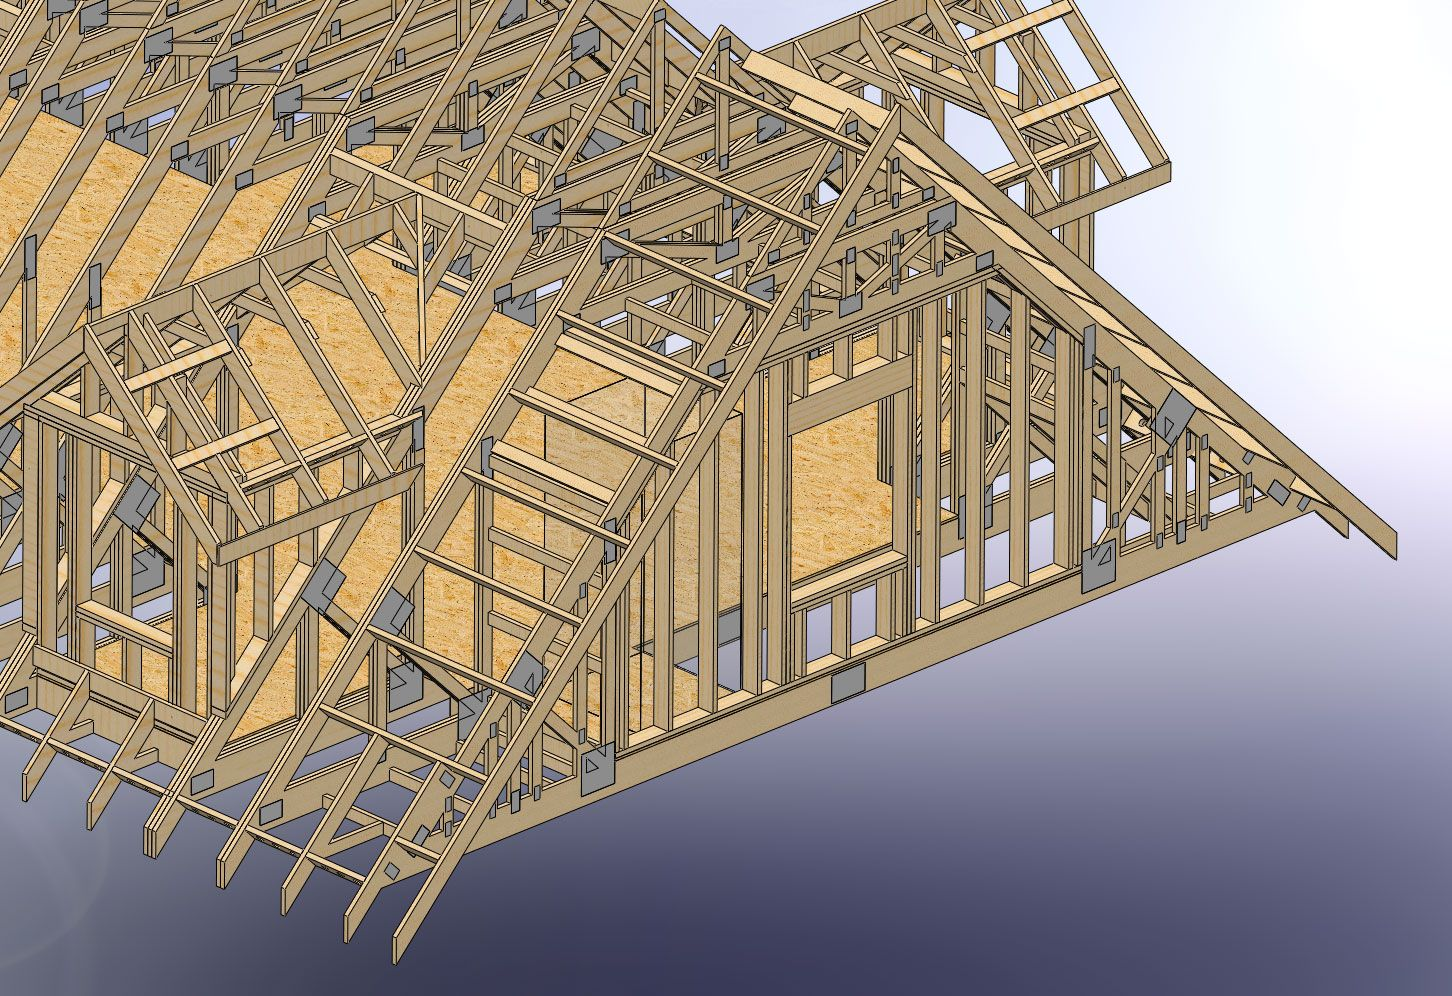 48x28 Garage With Attic And Six Dormers Carpentry